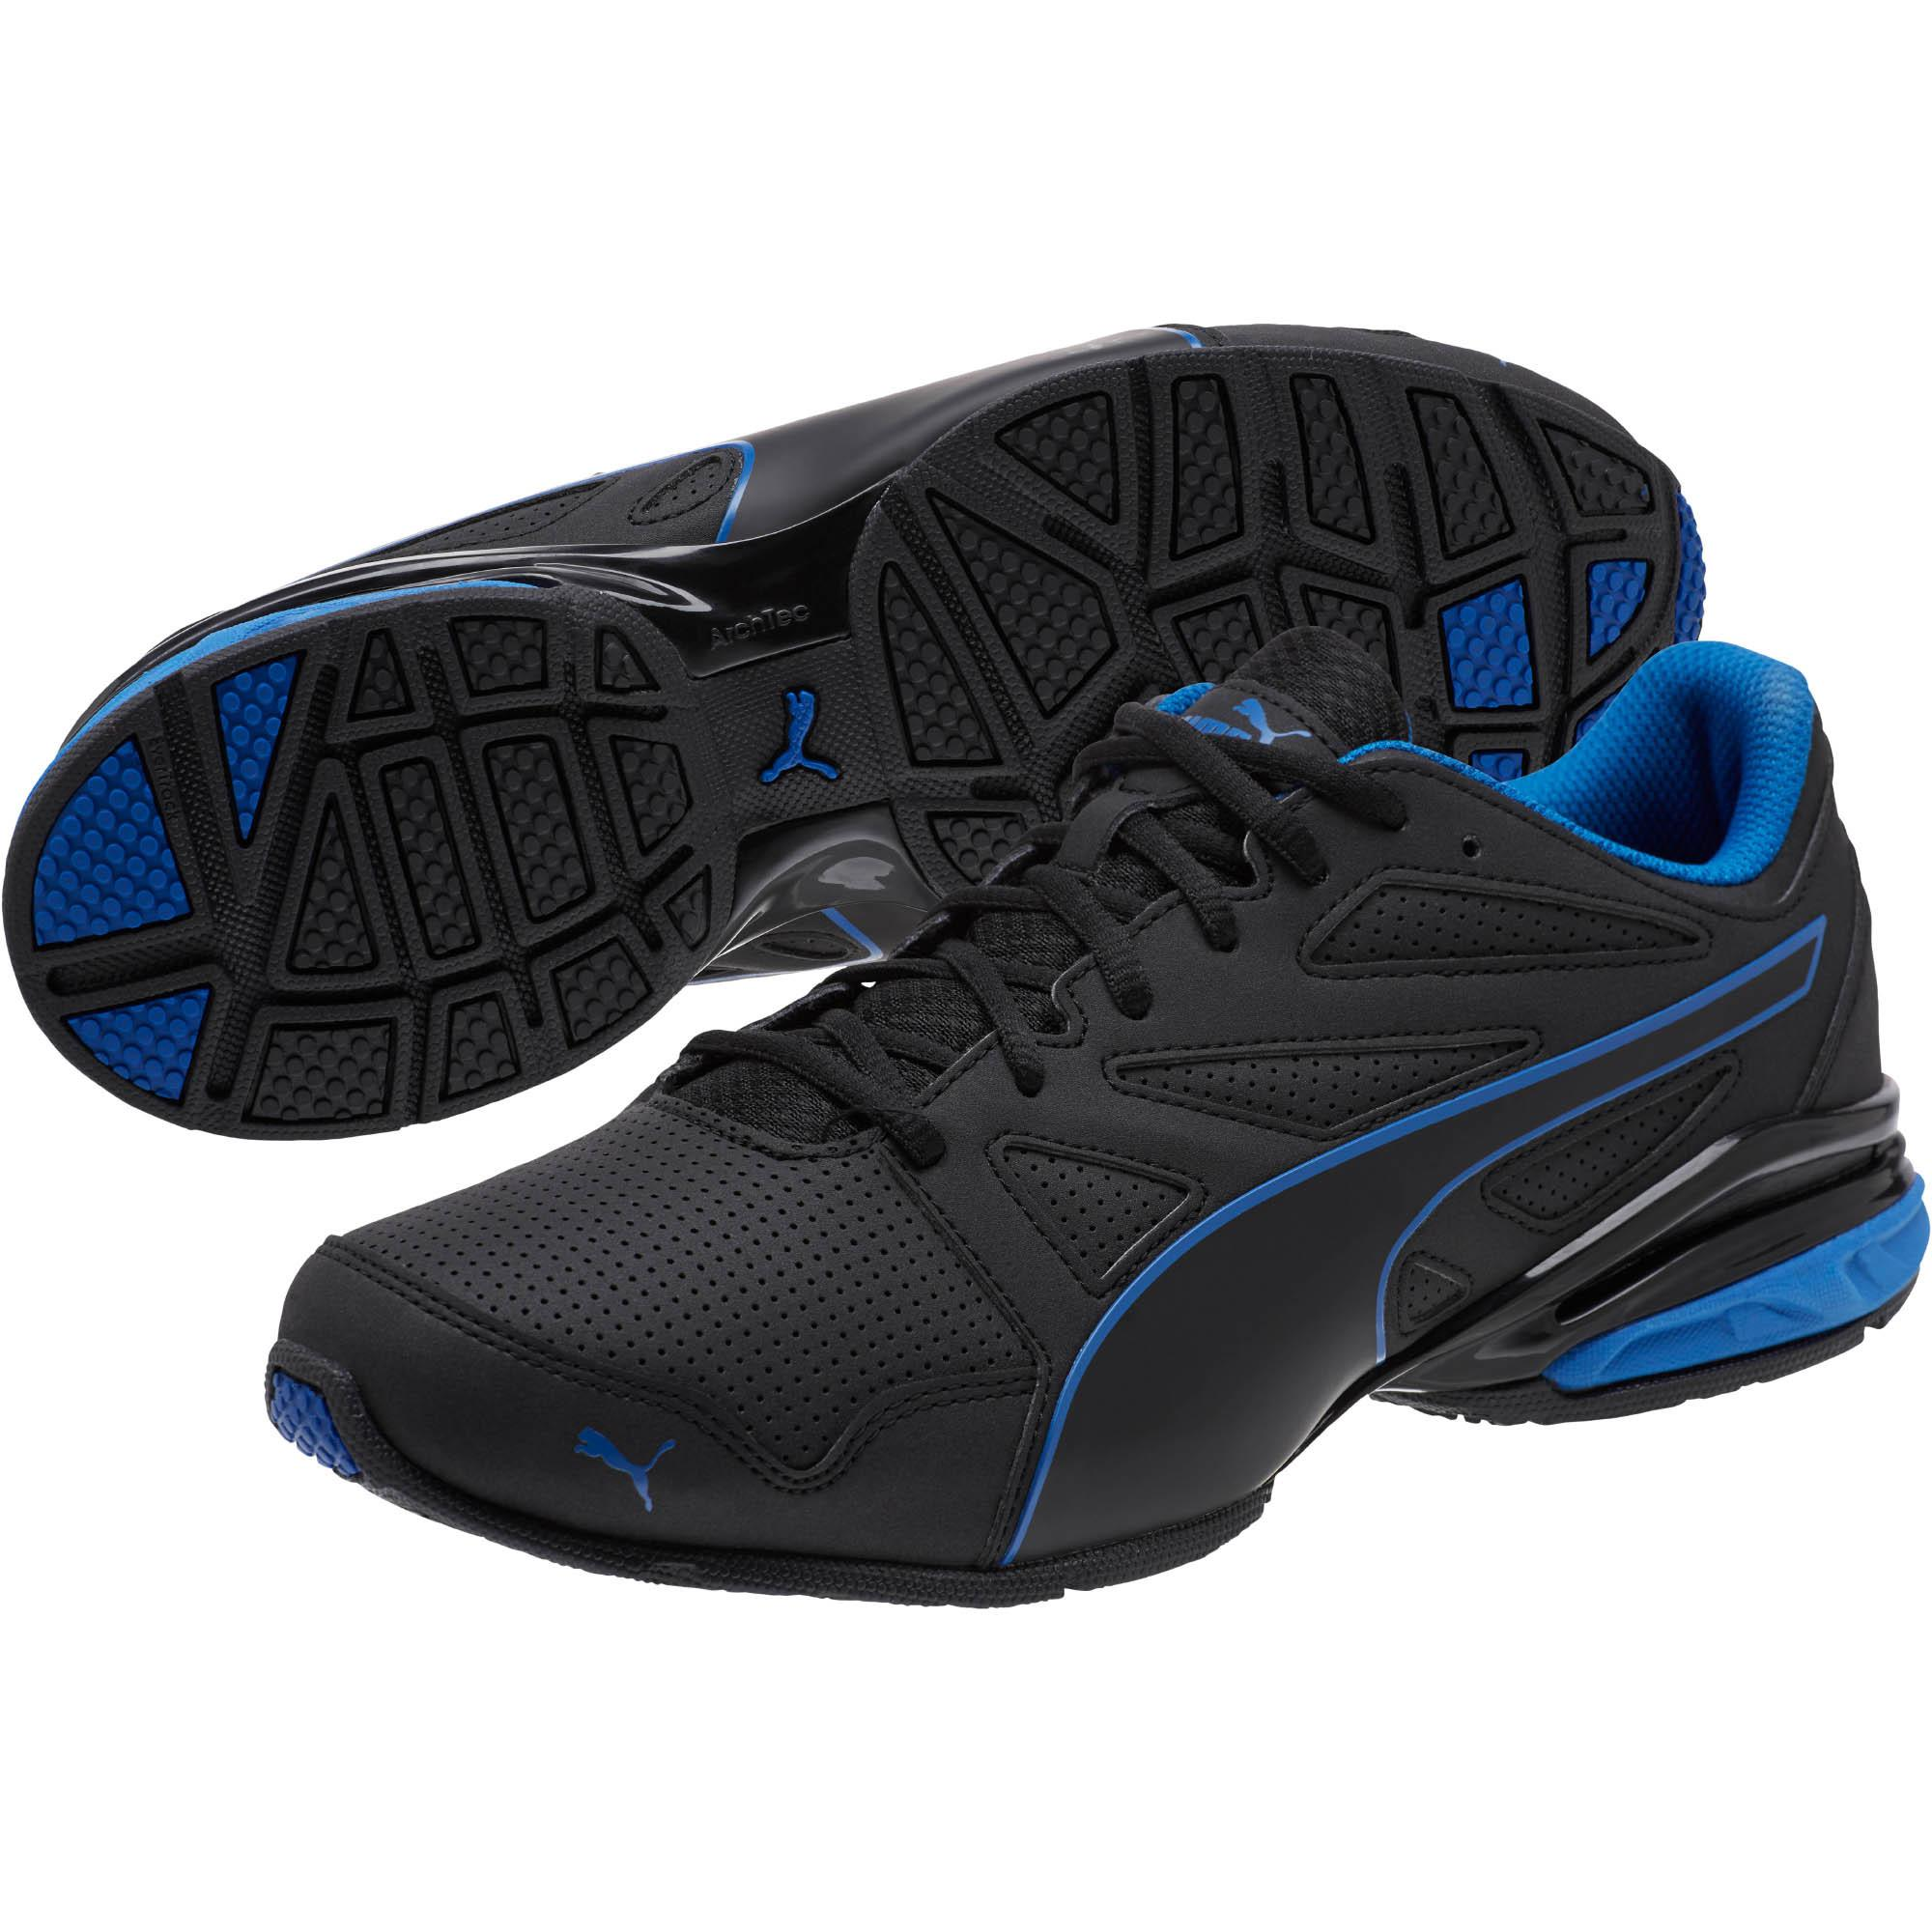 345d52776015af PUMA - Black Tazon Modern Sl Fm Men s Running Shoes for Men - Lyst. View  fullscreen